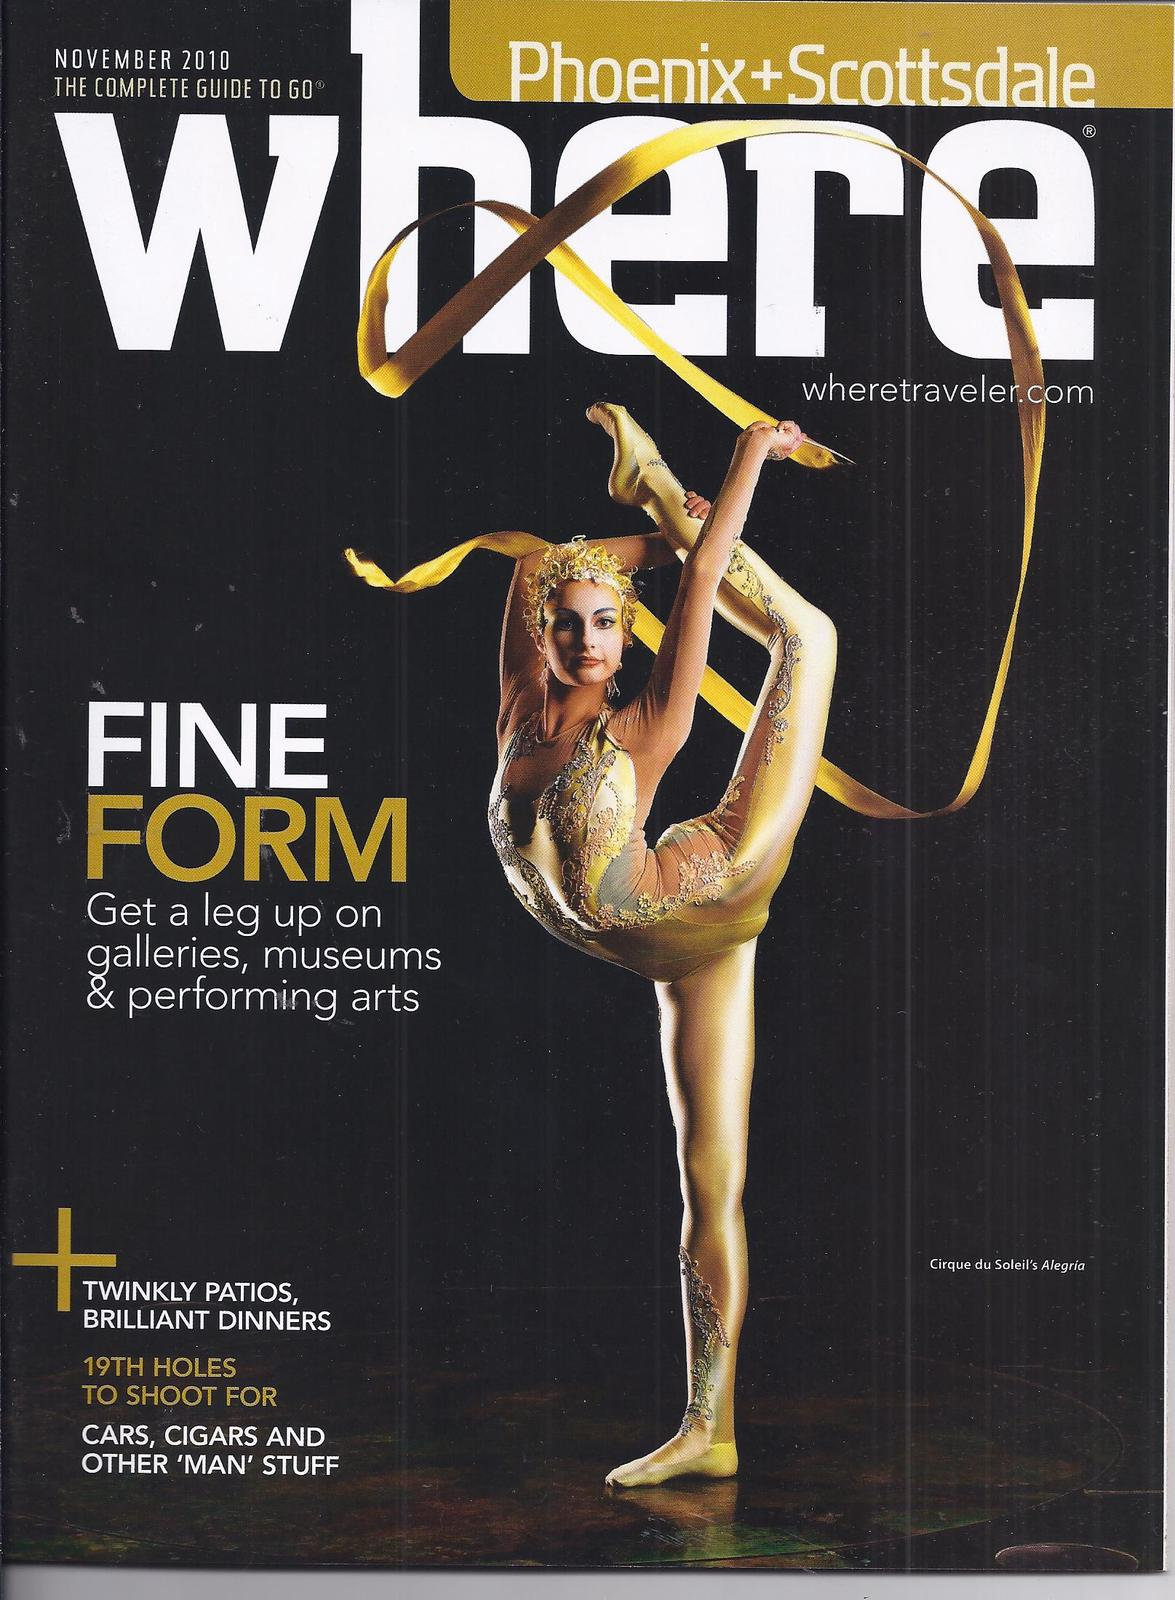 Primary image for CIRQUE DU SOLEIL'S ALEGRIA @ Las Vegas WHERE Mag NOV 2010